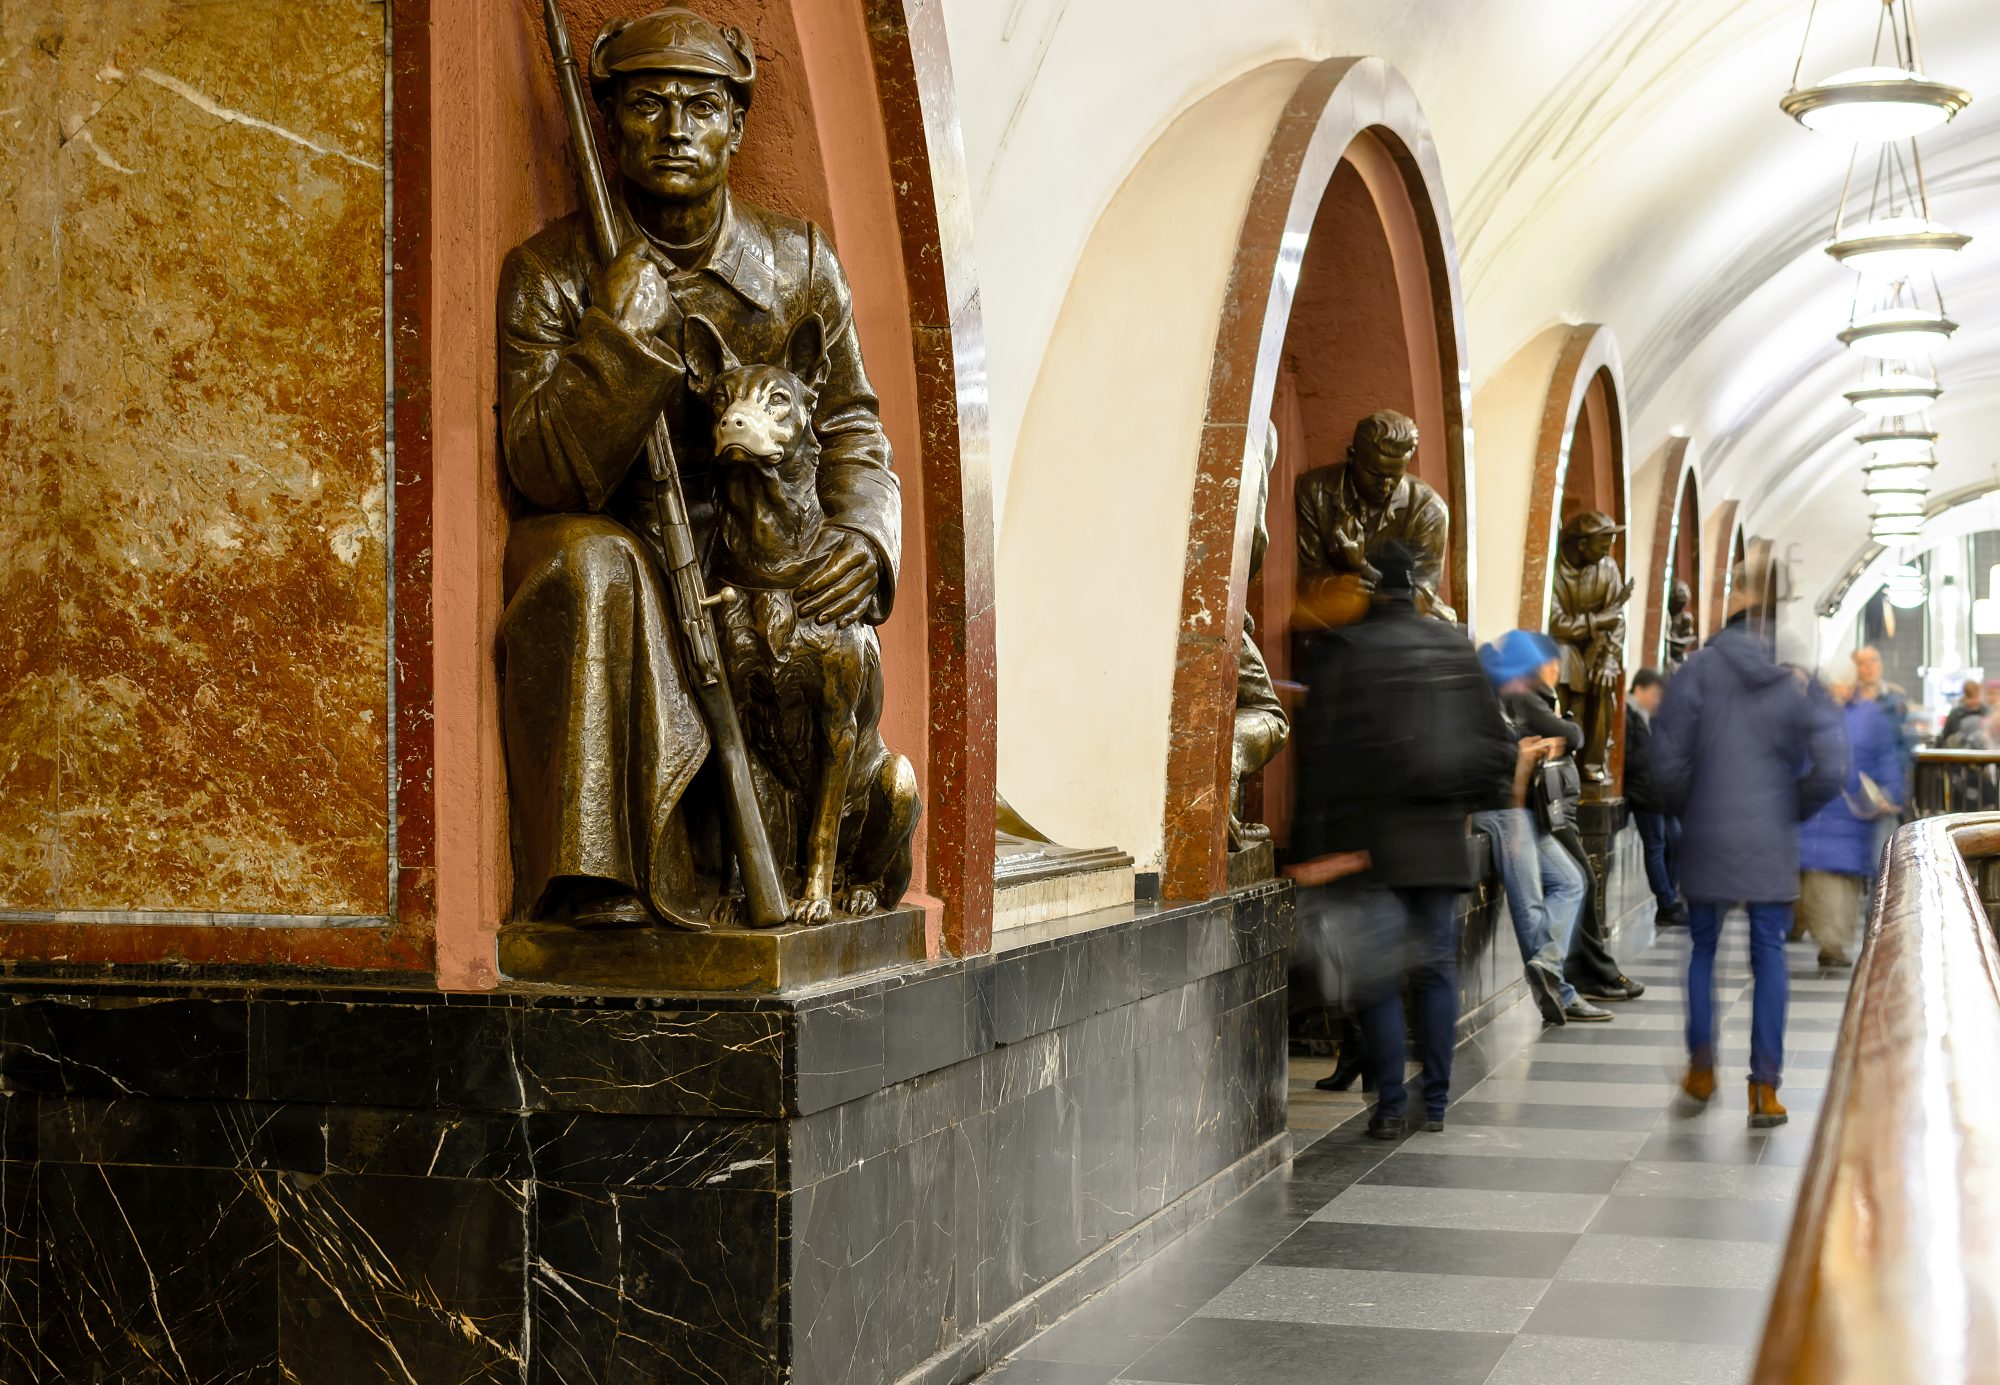 According to superstition, rubbing the nose of the bronze sheppard dog statue at Ploshchad Revolyutsii station will bring good luck. Photo: Moscow Government.